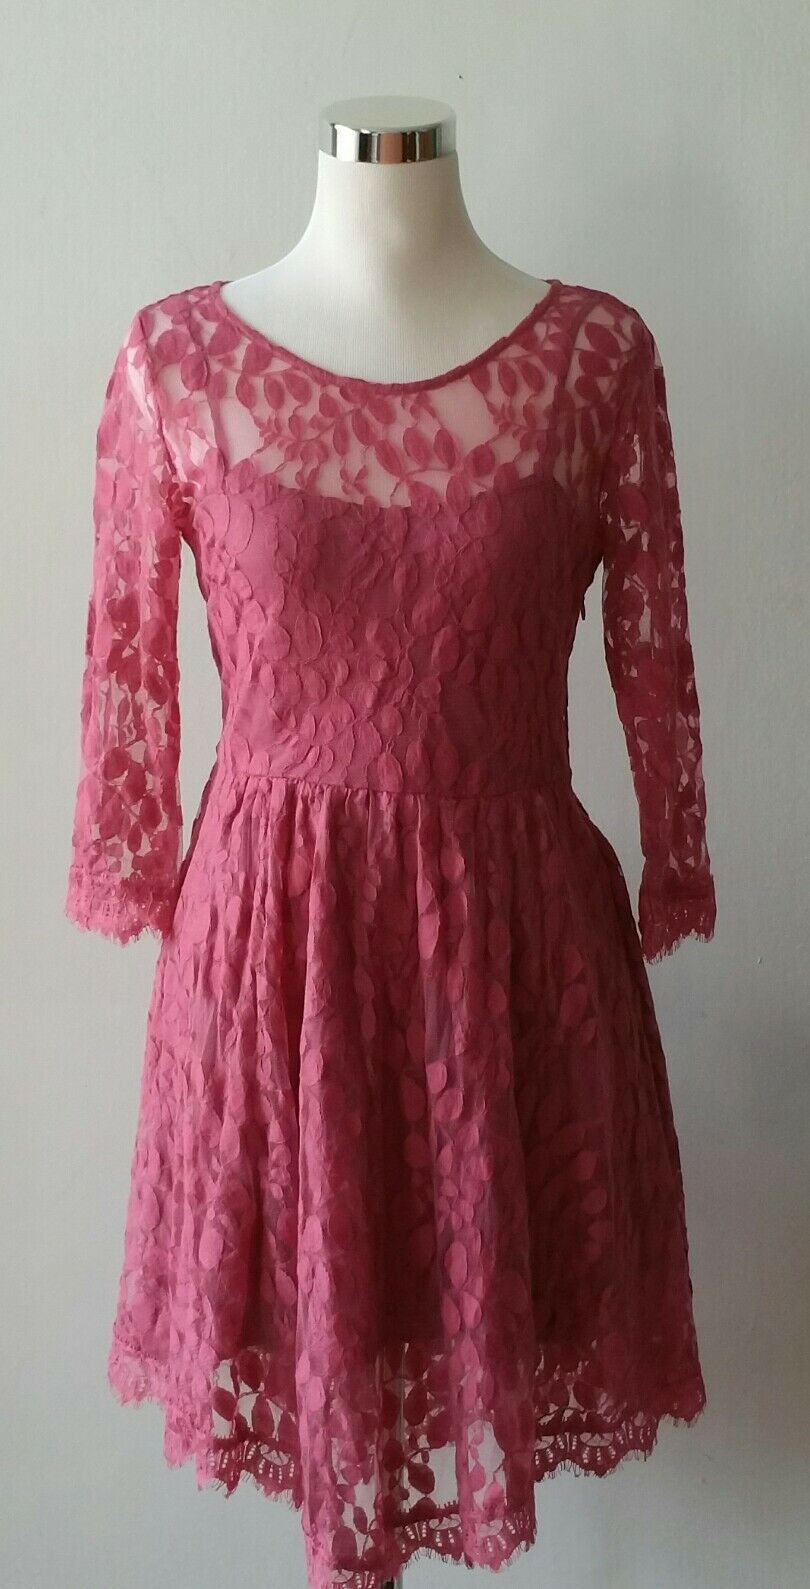 Free People  Woherren Flare Lace Dress Asymmetrical Hem  Größe 6 New